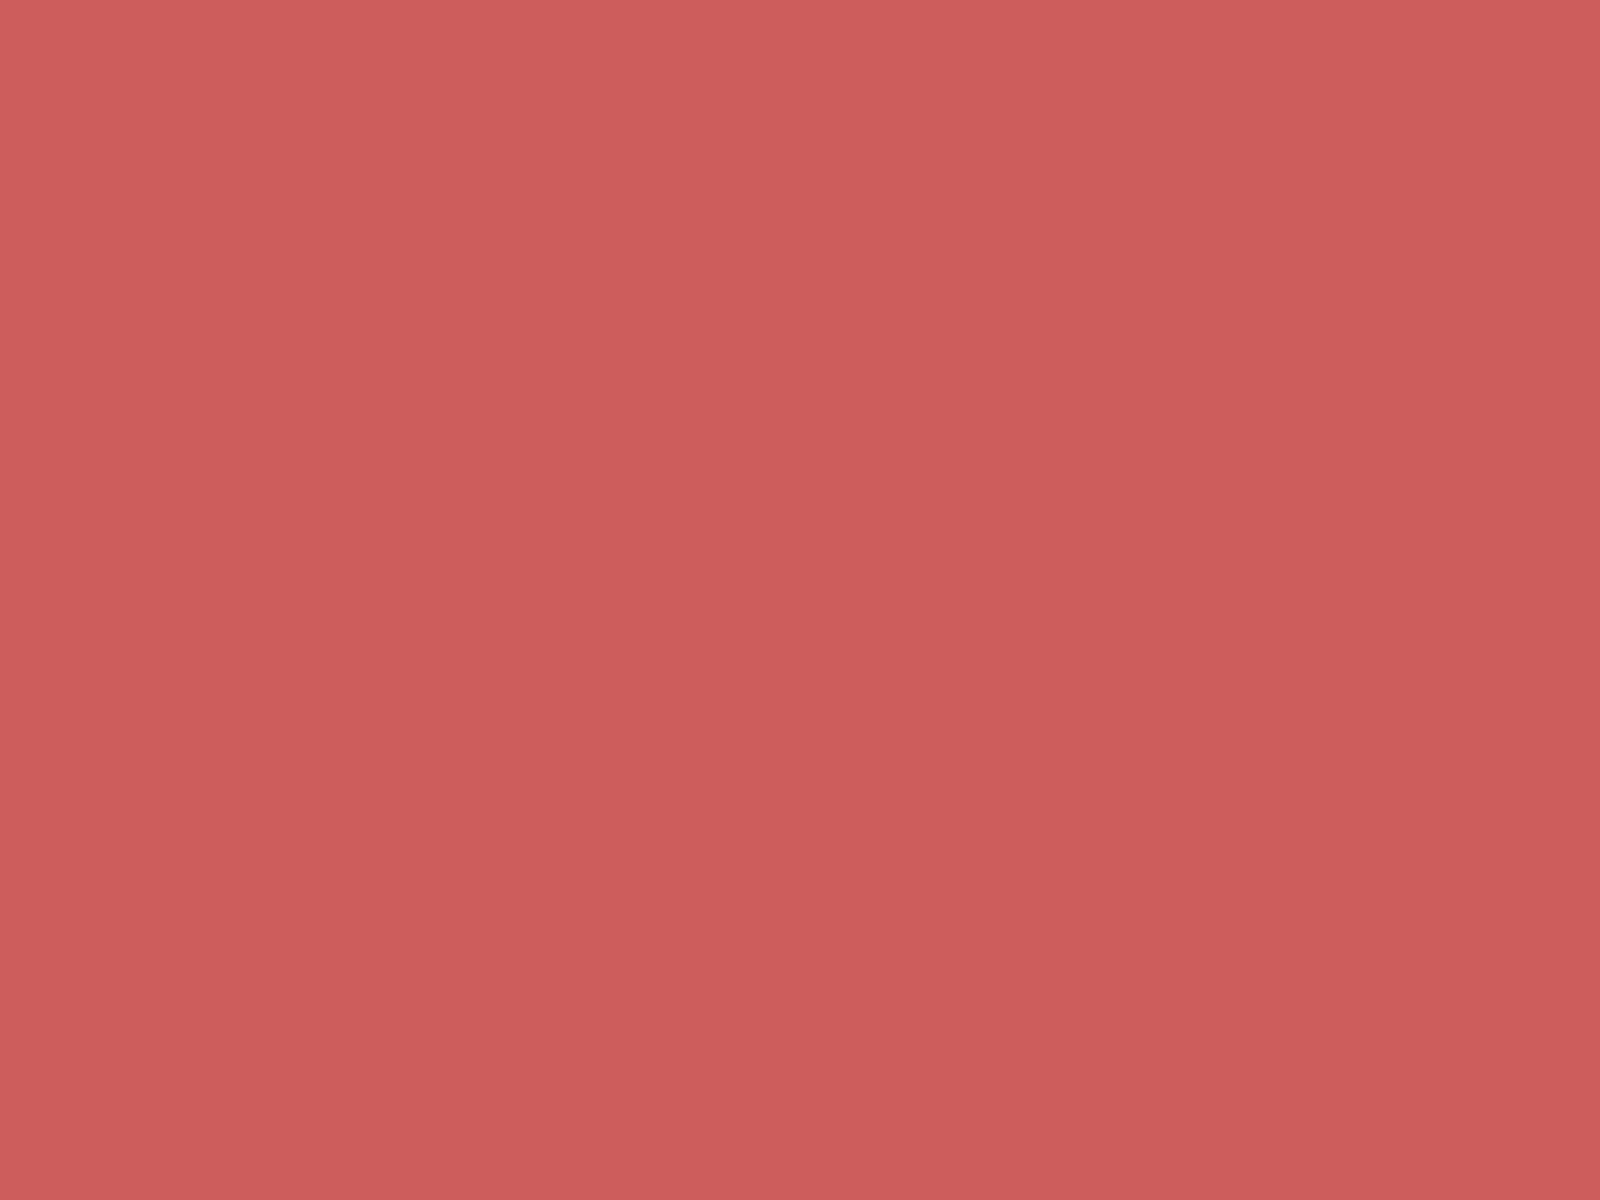 1600x1200 Indian Red Solid Color Background